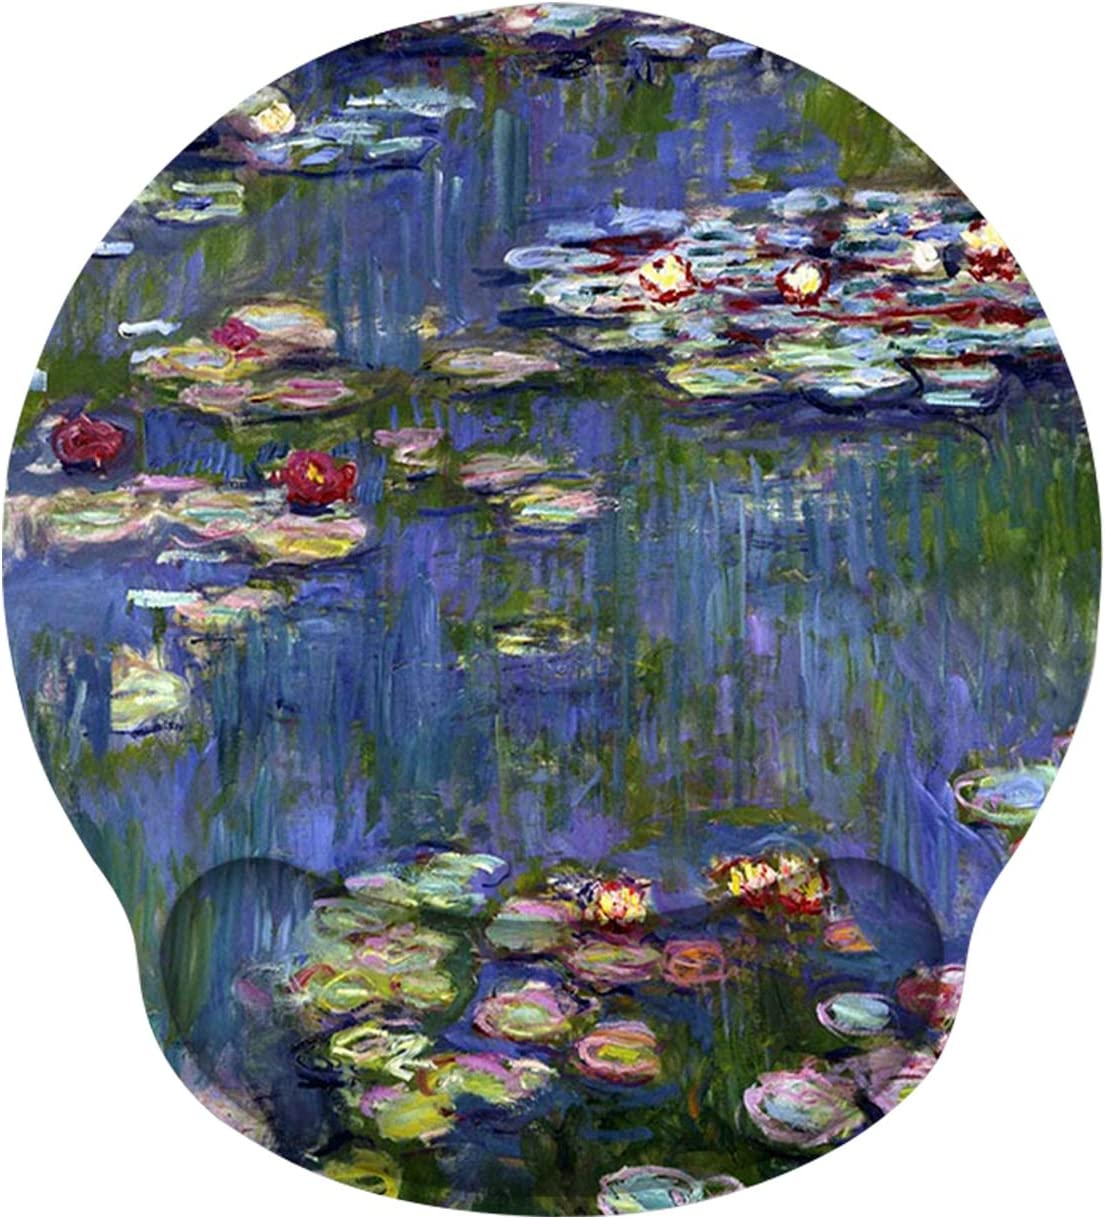 Mouse Pad Wrist Rest Support, ToLuLu Gel Mouse Pads with Non-Slip Rubber Base Memory Foam Mousepad, Mouse Wrist Rest Pad for Laptop Computer Home Office Working Gaming Pain Relief, Monet Water Lilies